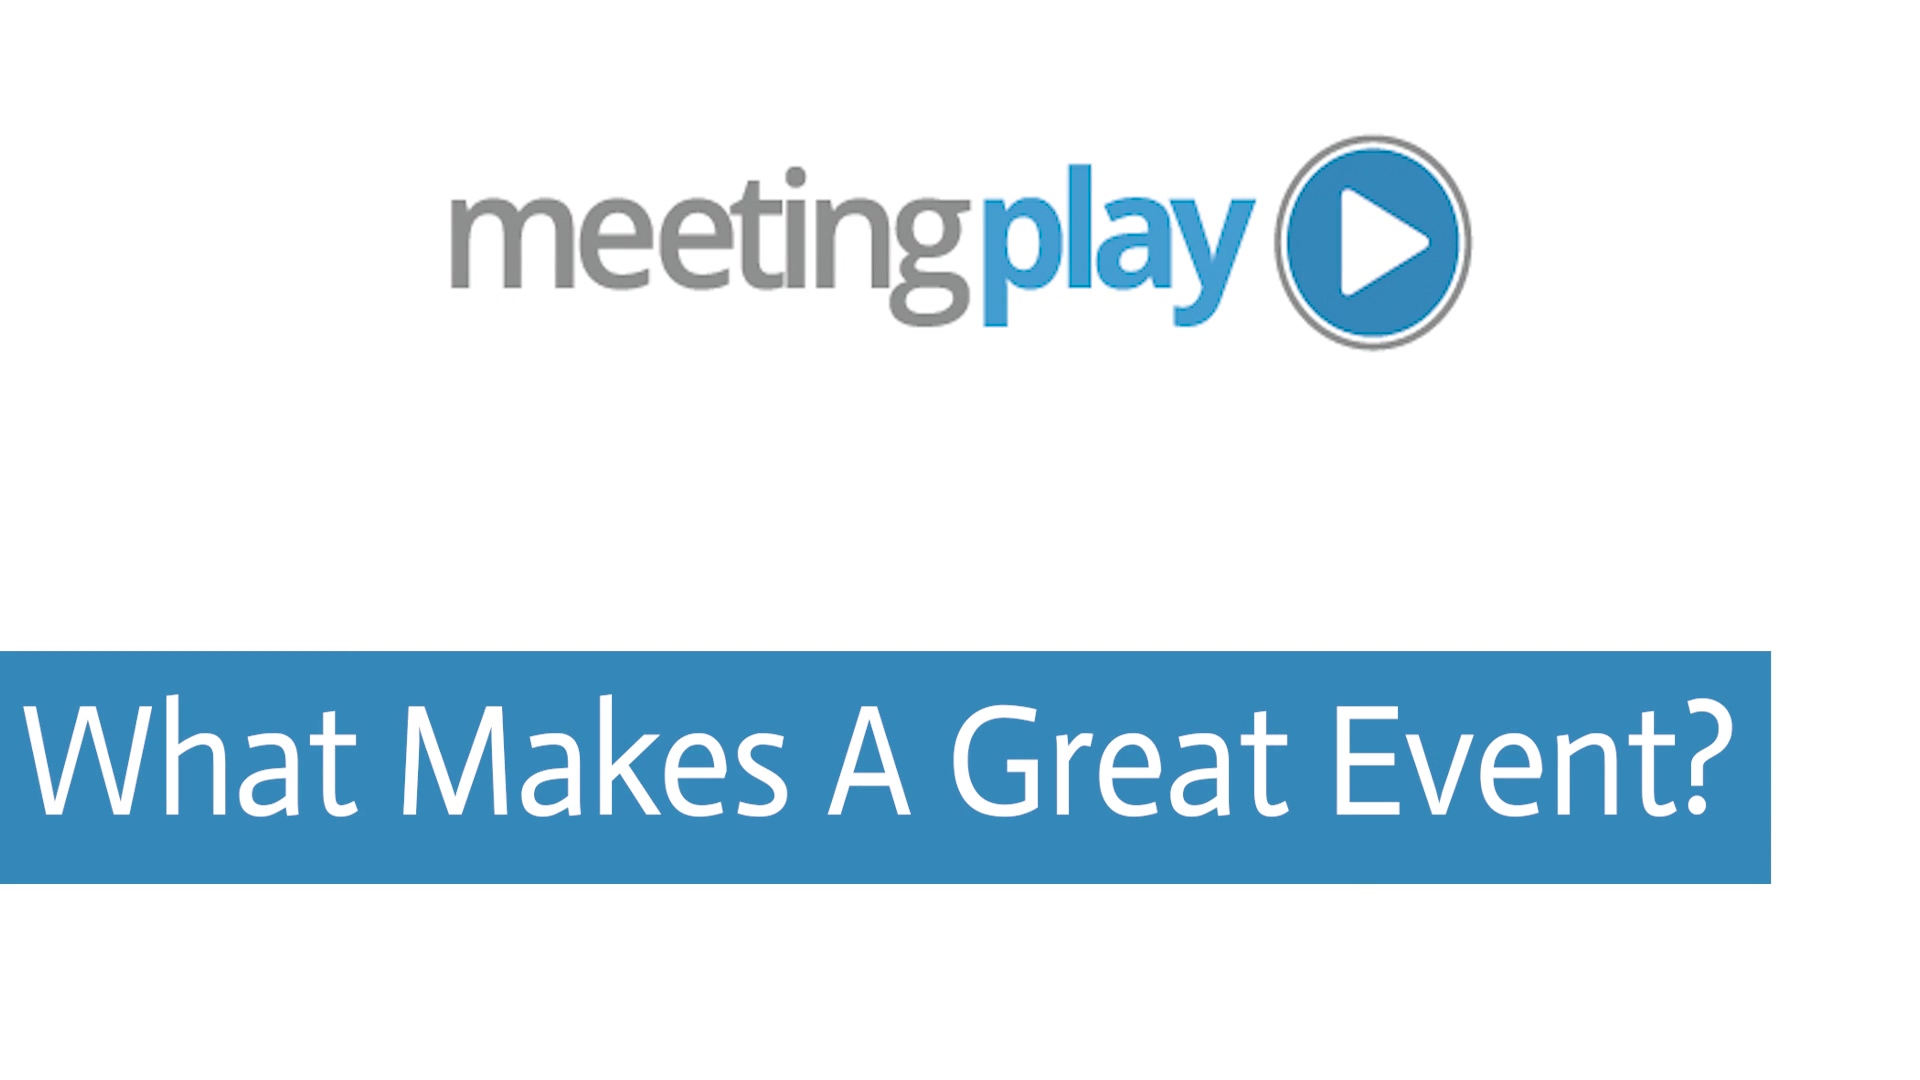 MP- What Makes A Great Event